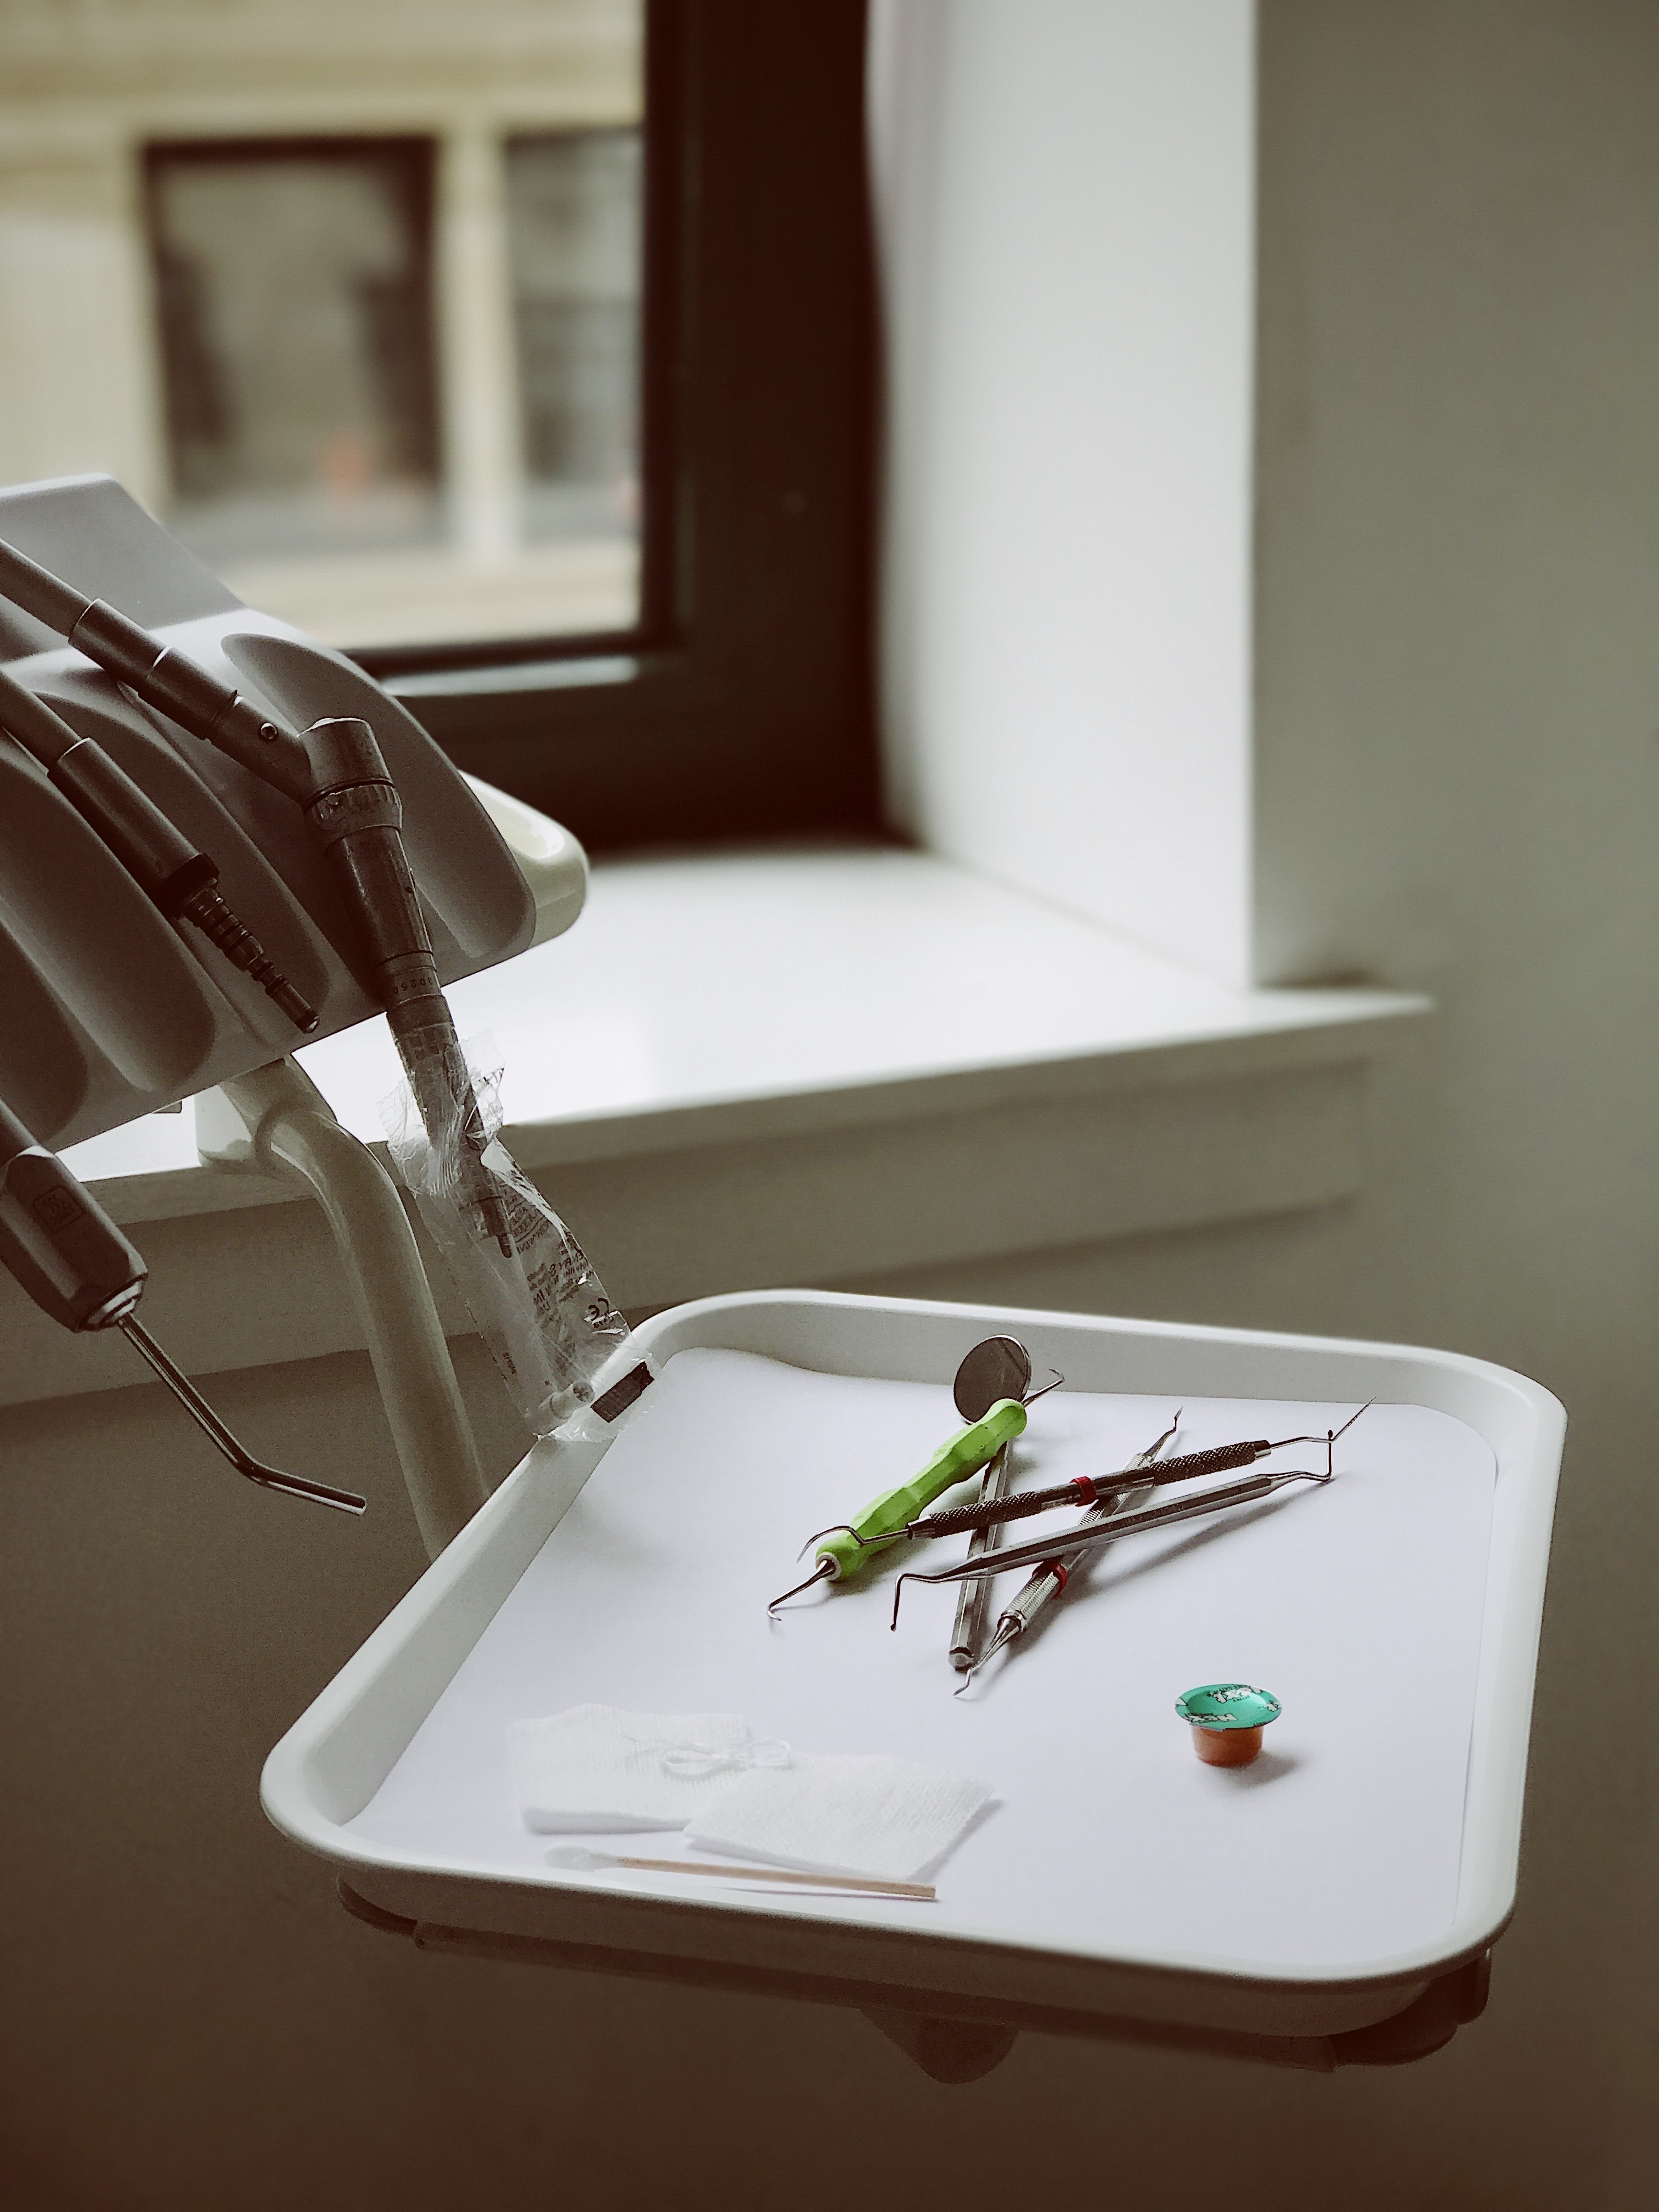 Dentist tools on white tray near window and white wall